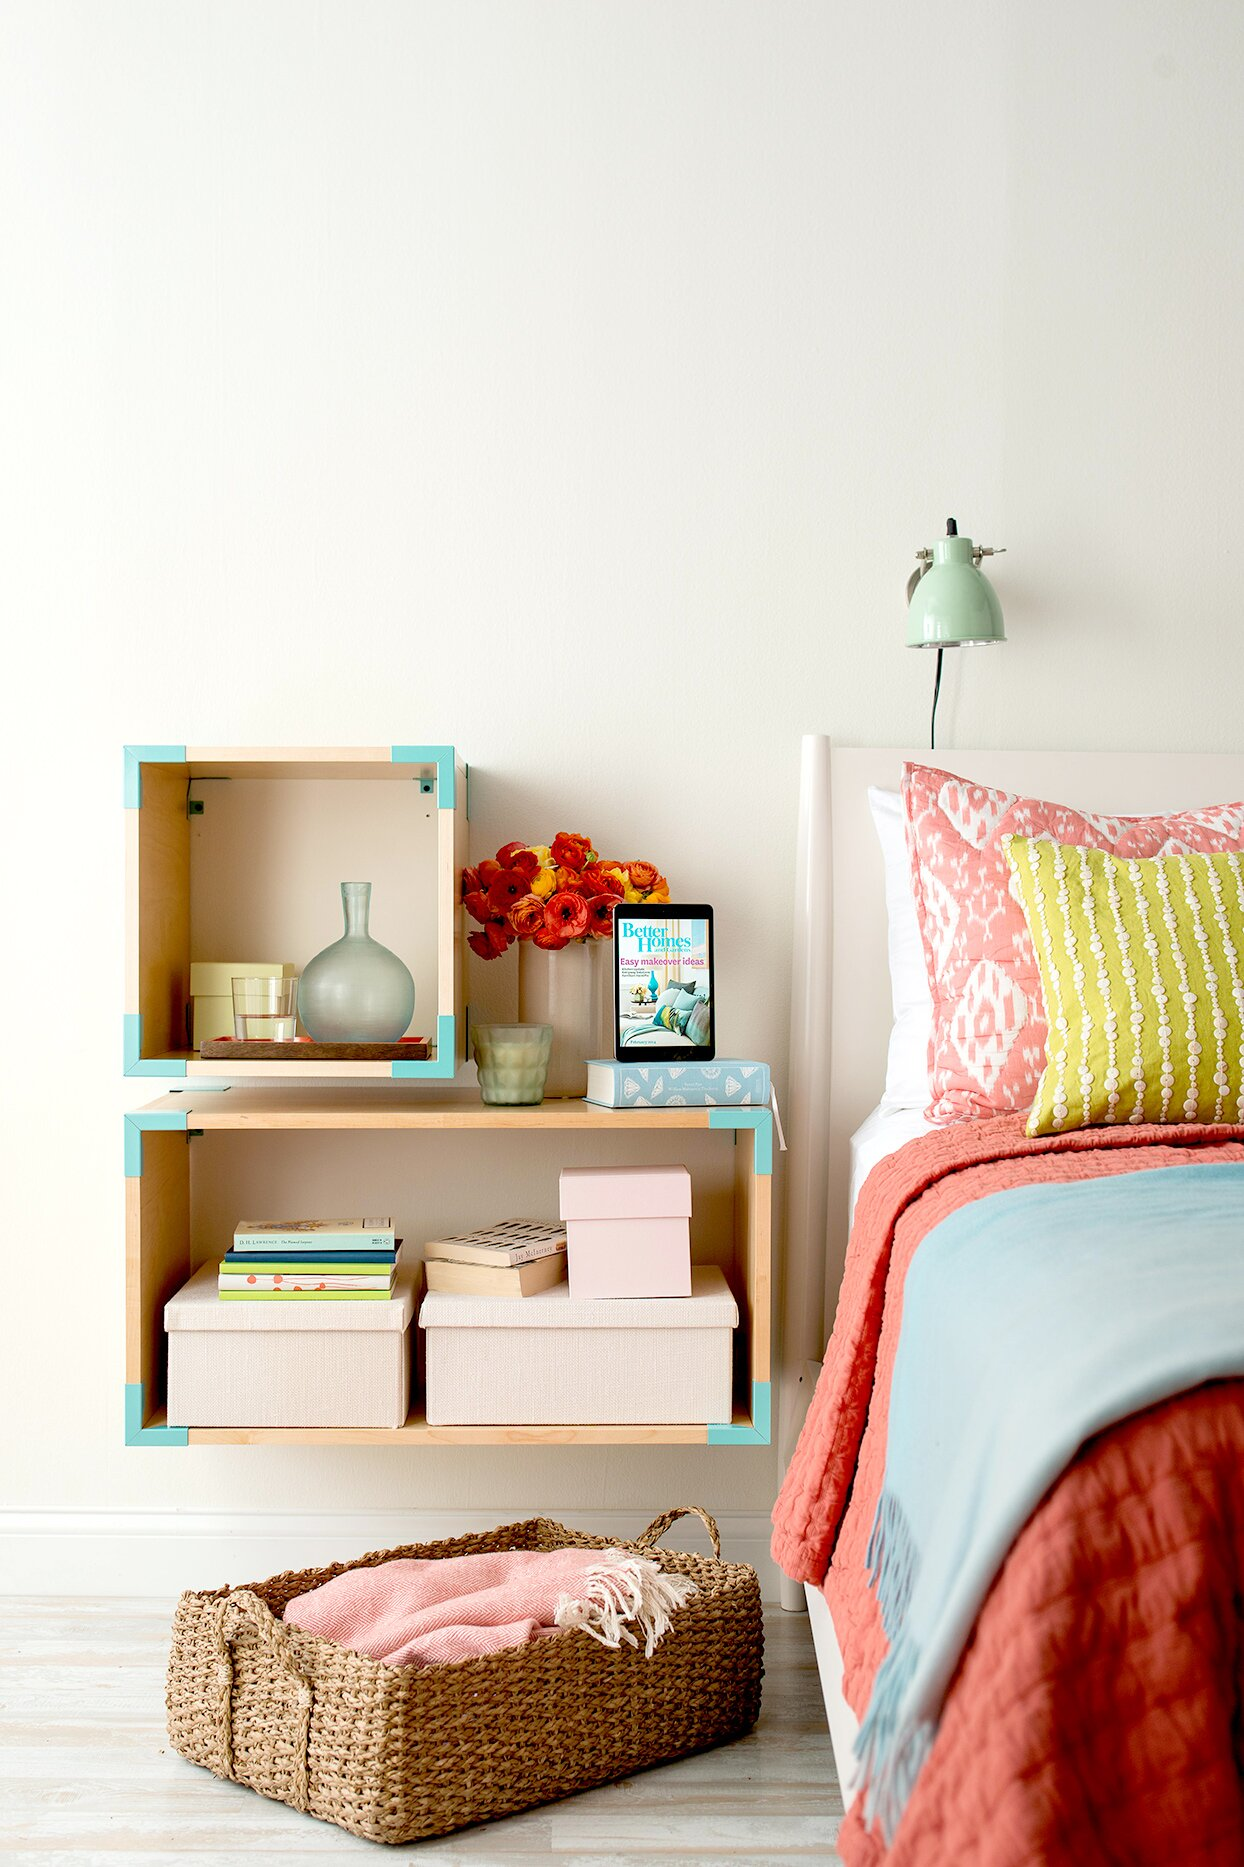 3 Bedroom Storage Solutions for a More Organized Sleeping Space